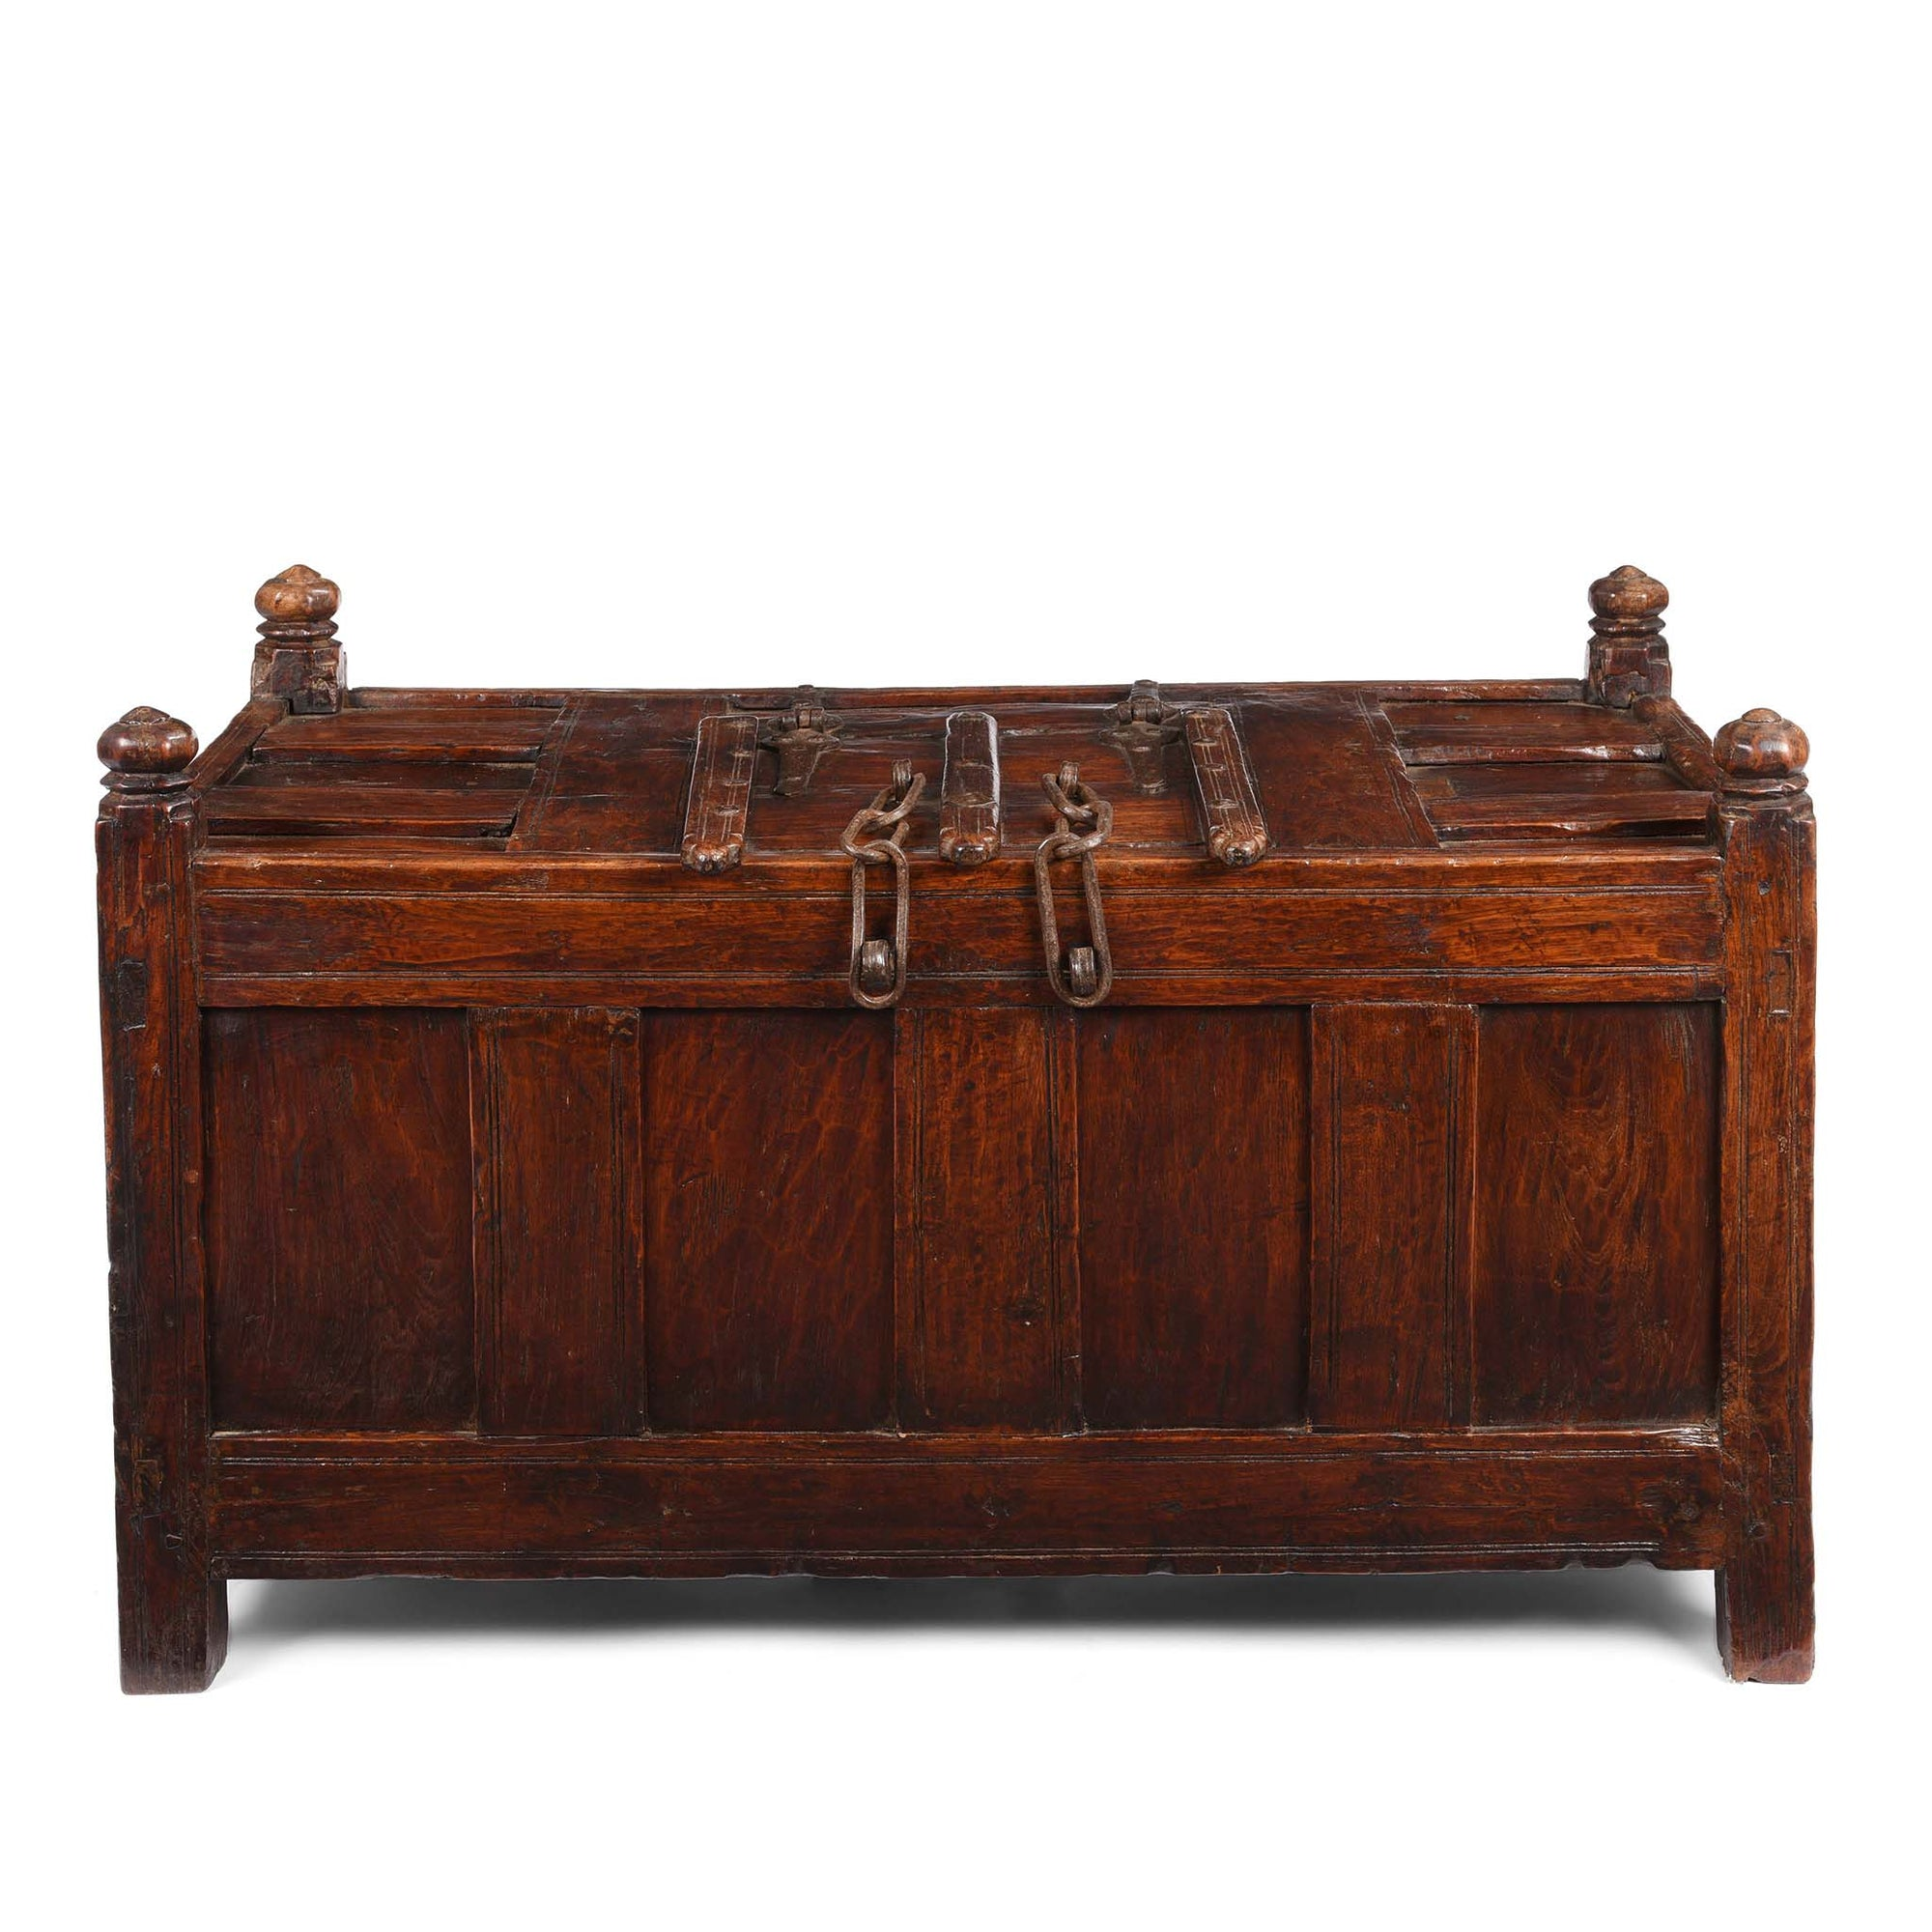 Teak Stick Chest From Banswara Tribal Area - 19thC